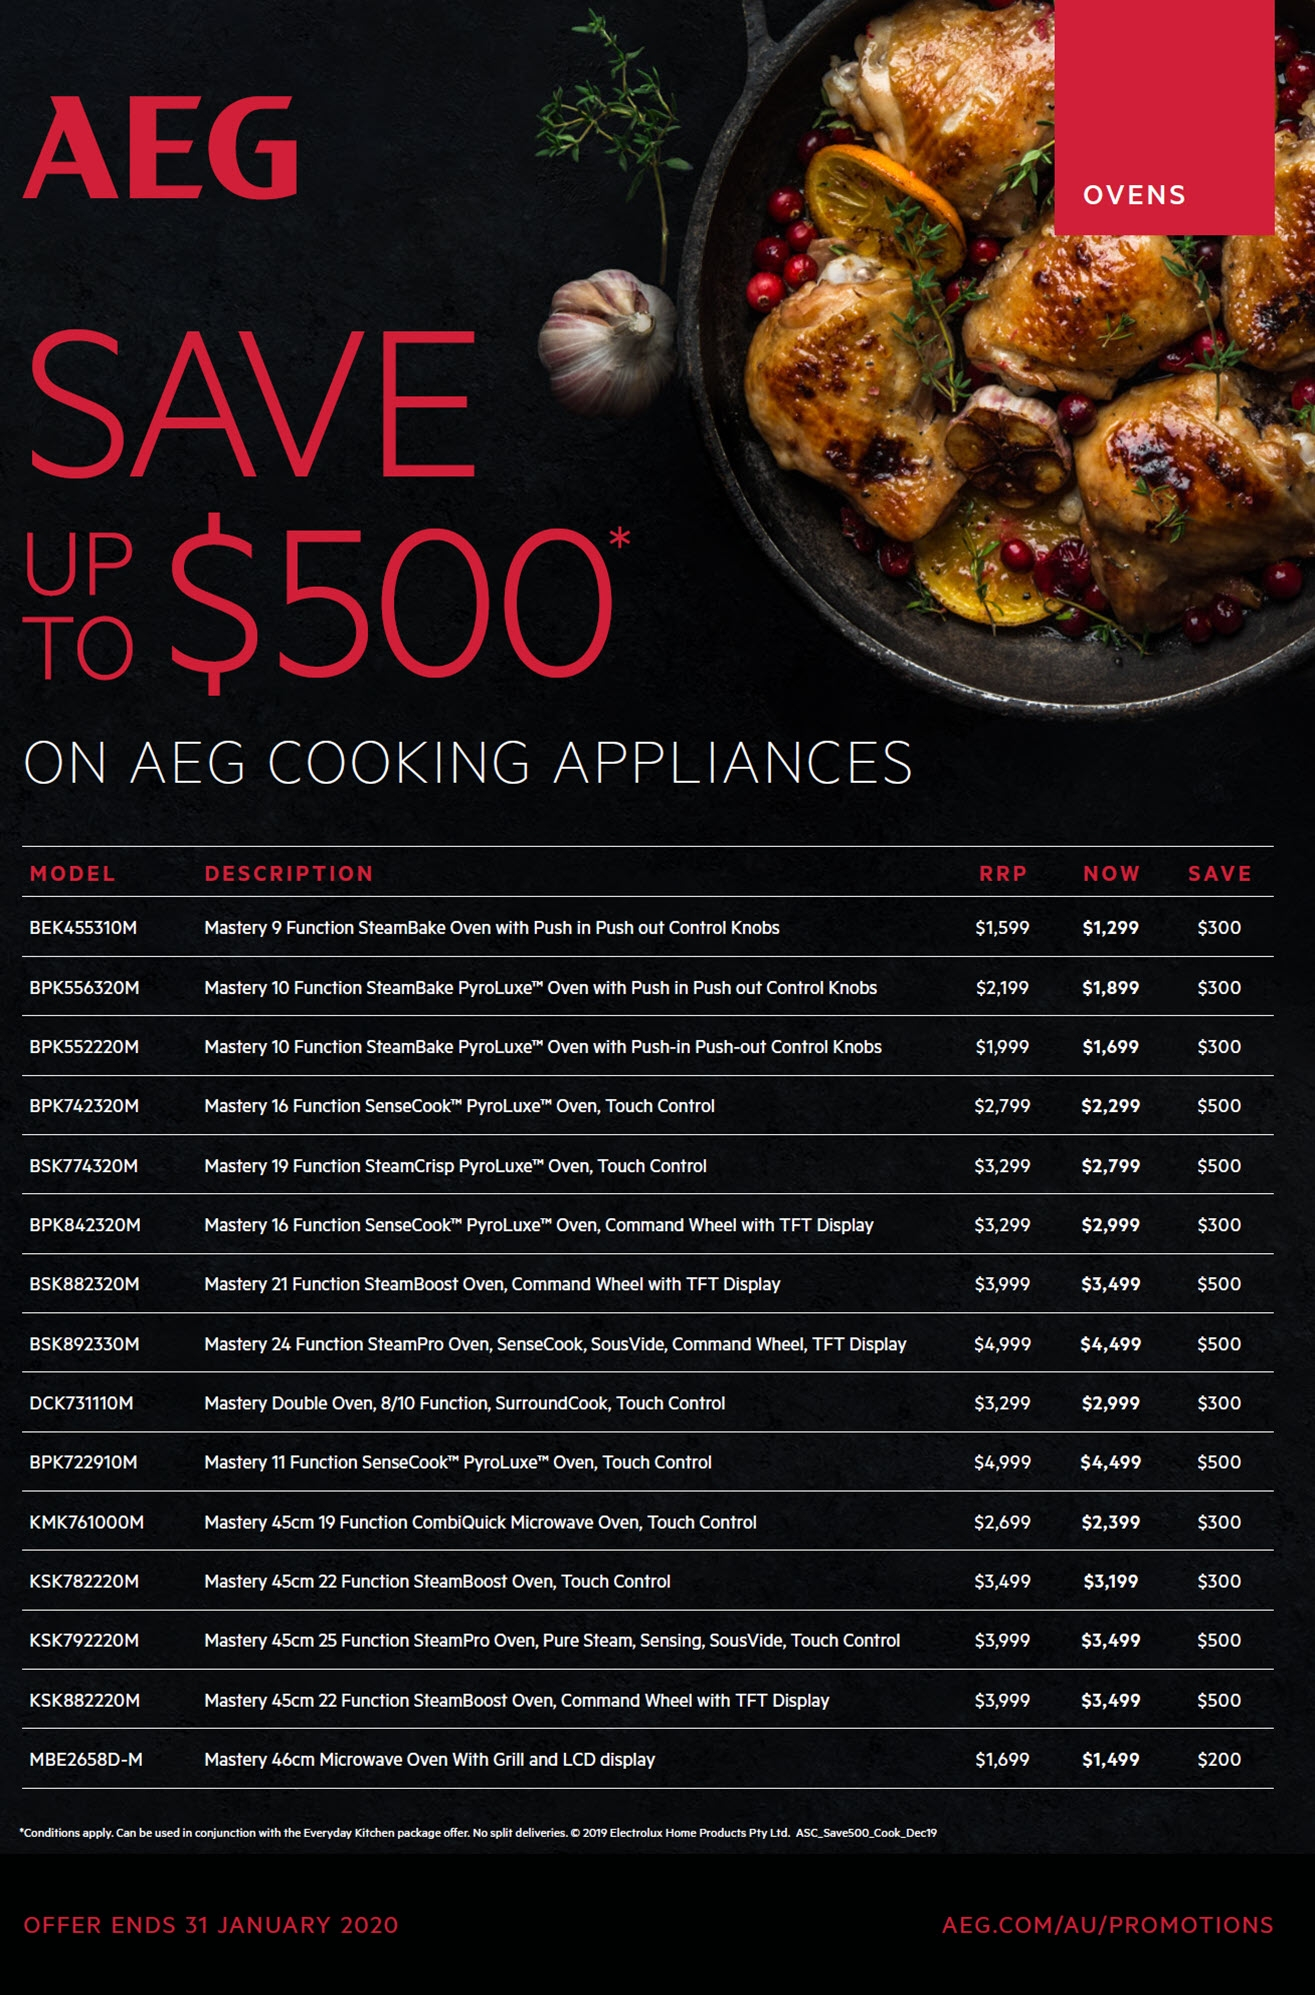 AEG Save $500 on selected Cooking Appliances